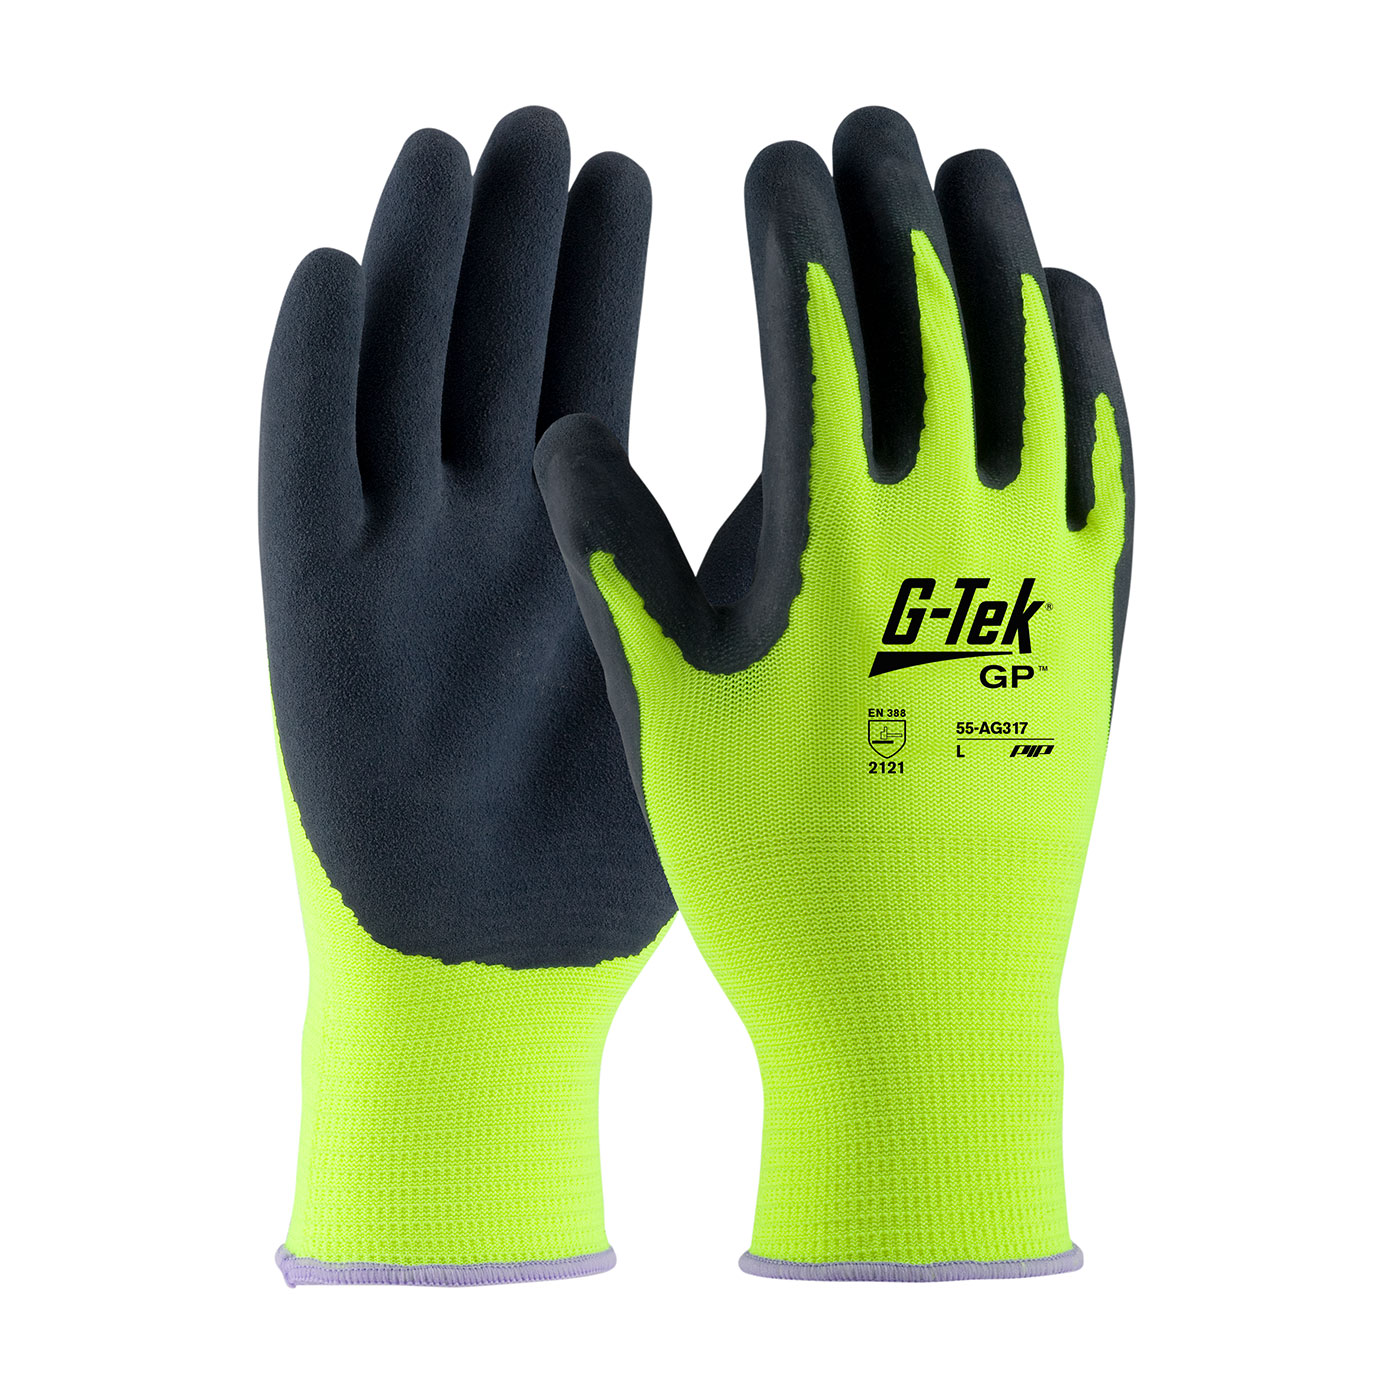 #55-AG317 PIP®  Hi-Vis Yellow G-Tek® GP™ Polyester Shell with Latex Coated MicroSurface Grip